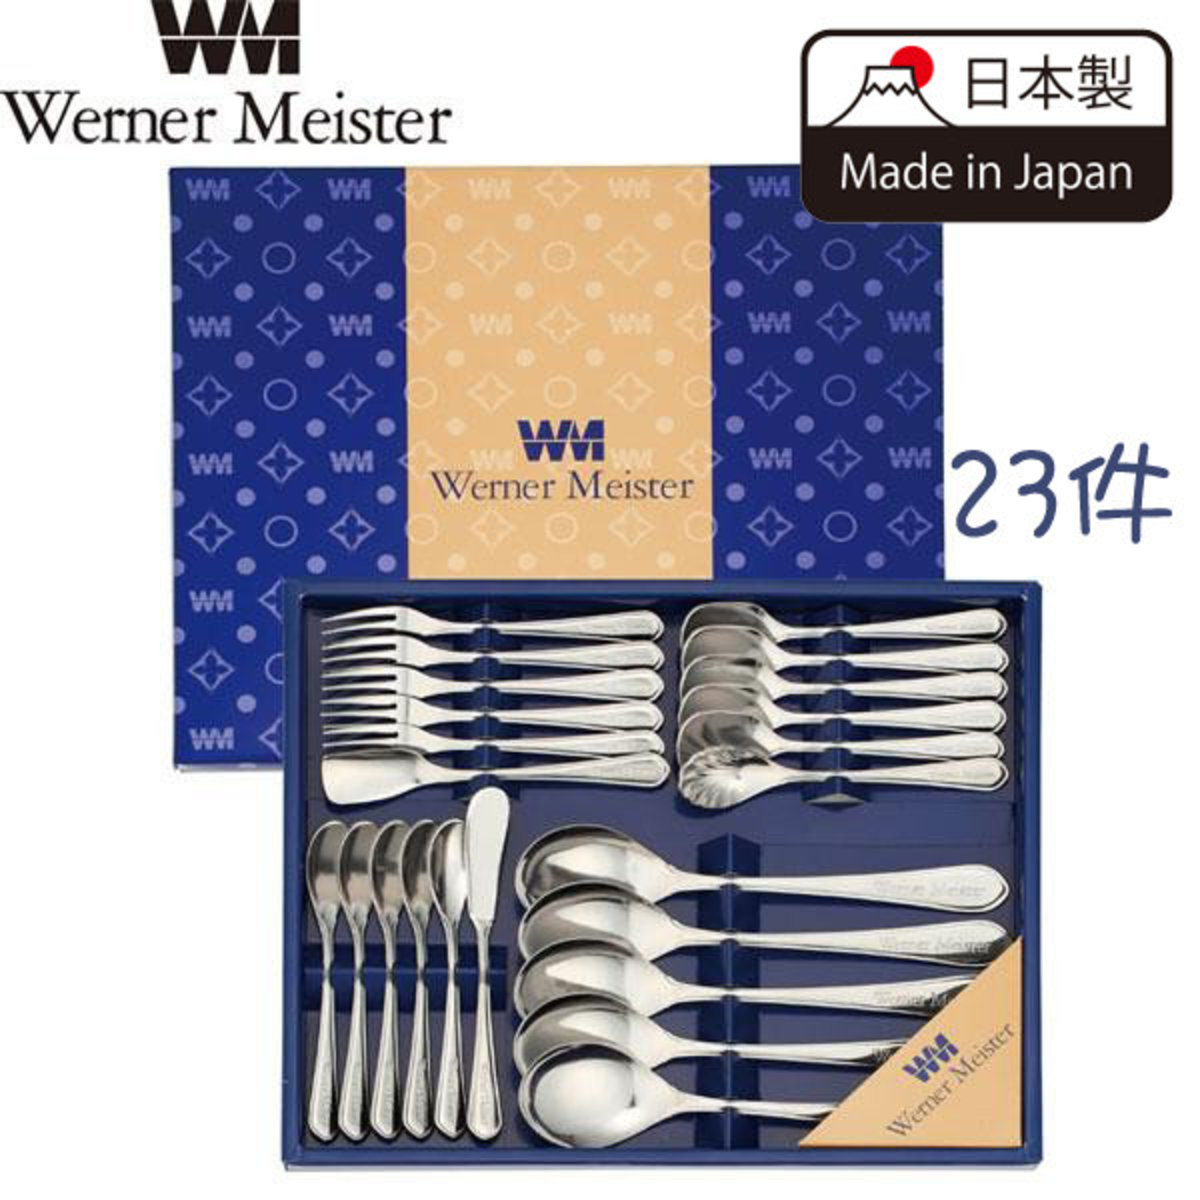 Japan Made Stainless Steel Cutlery (23-piece set)